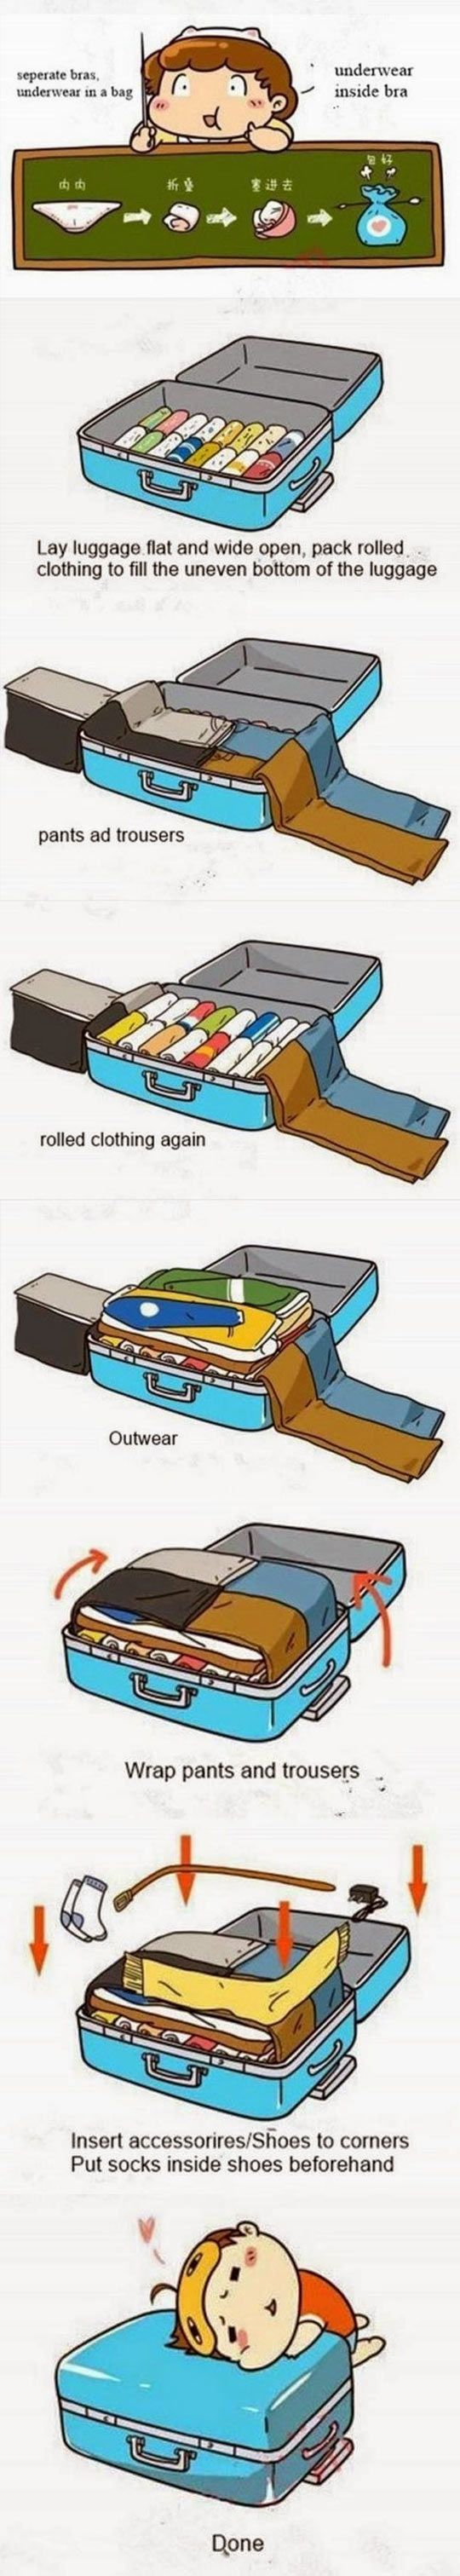 Best way to fold clothes for a trip - Best Way To Fold Clothes For A Trip 27